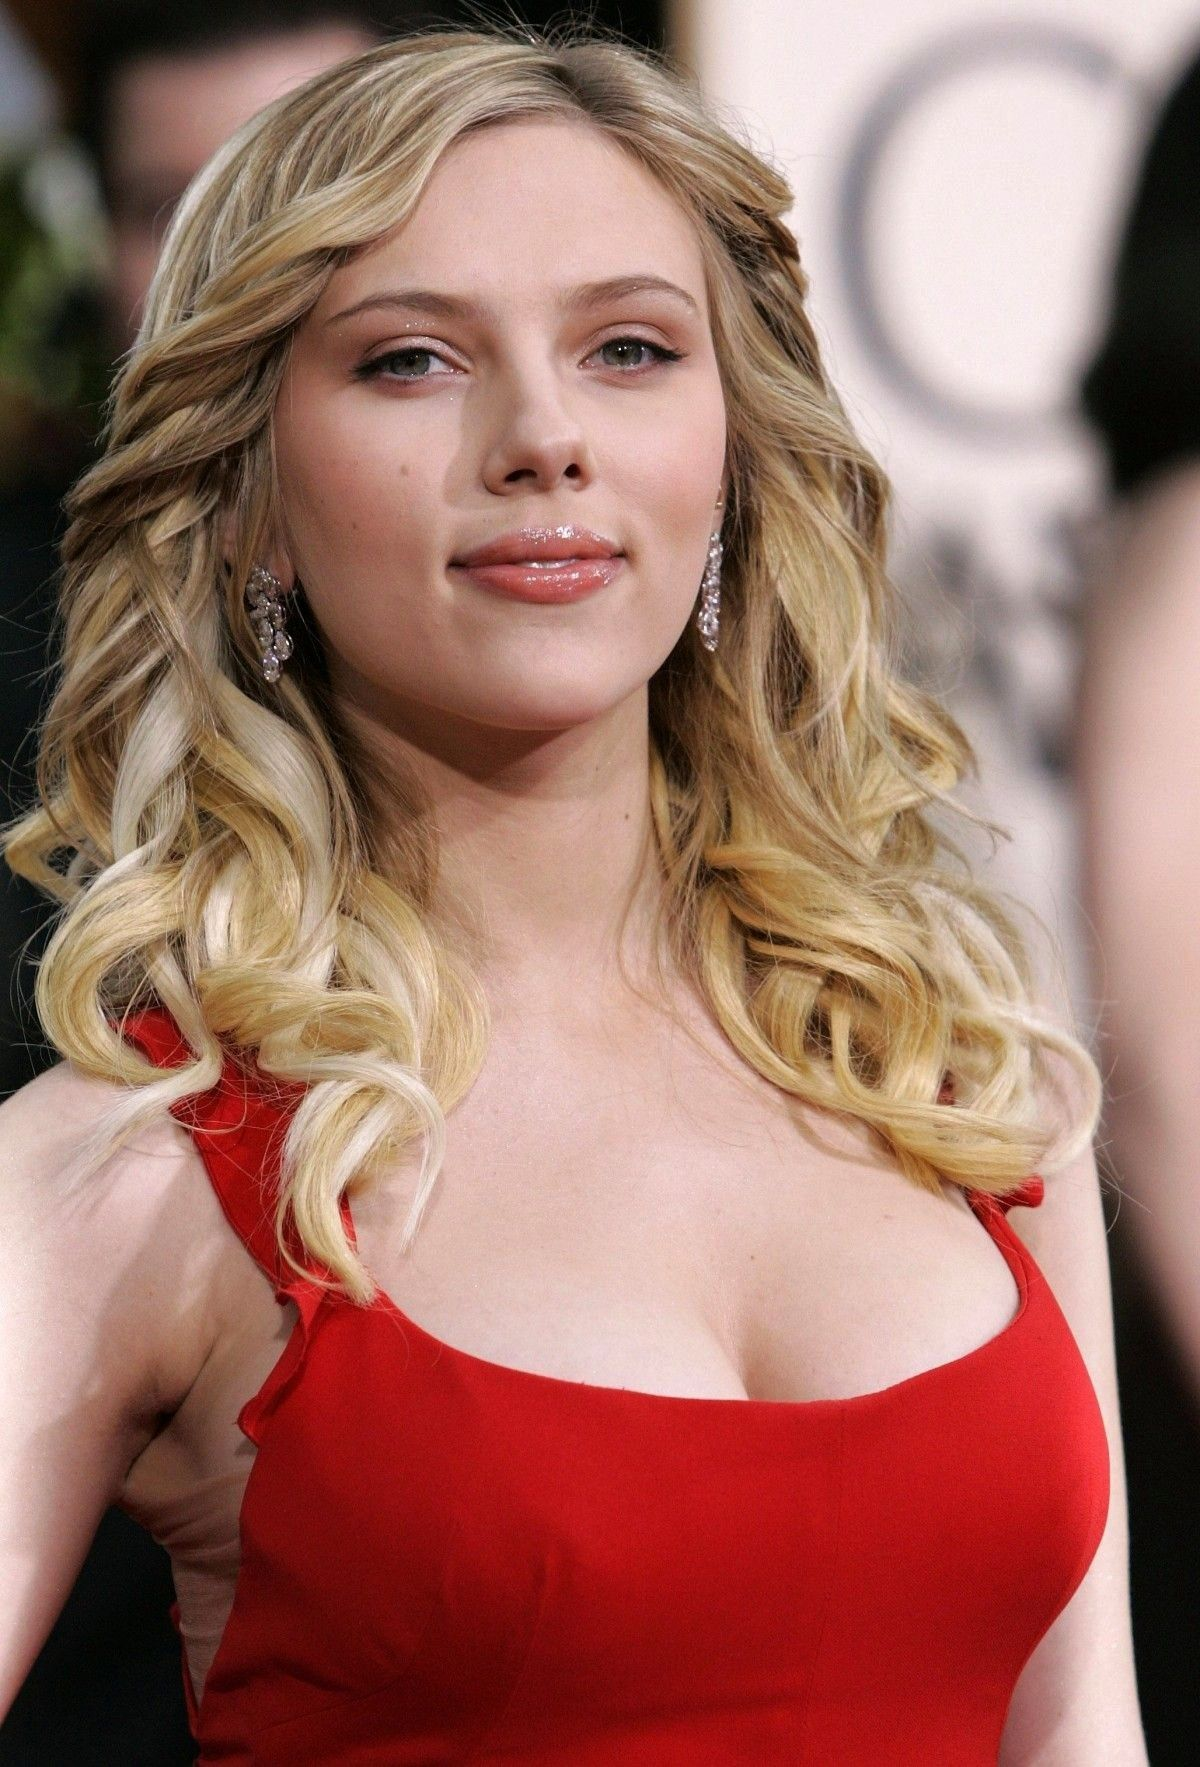 scarlett johansson set it all free lyrics